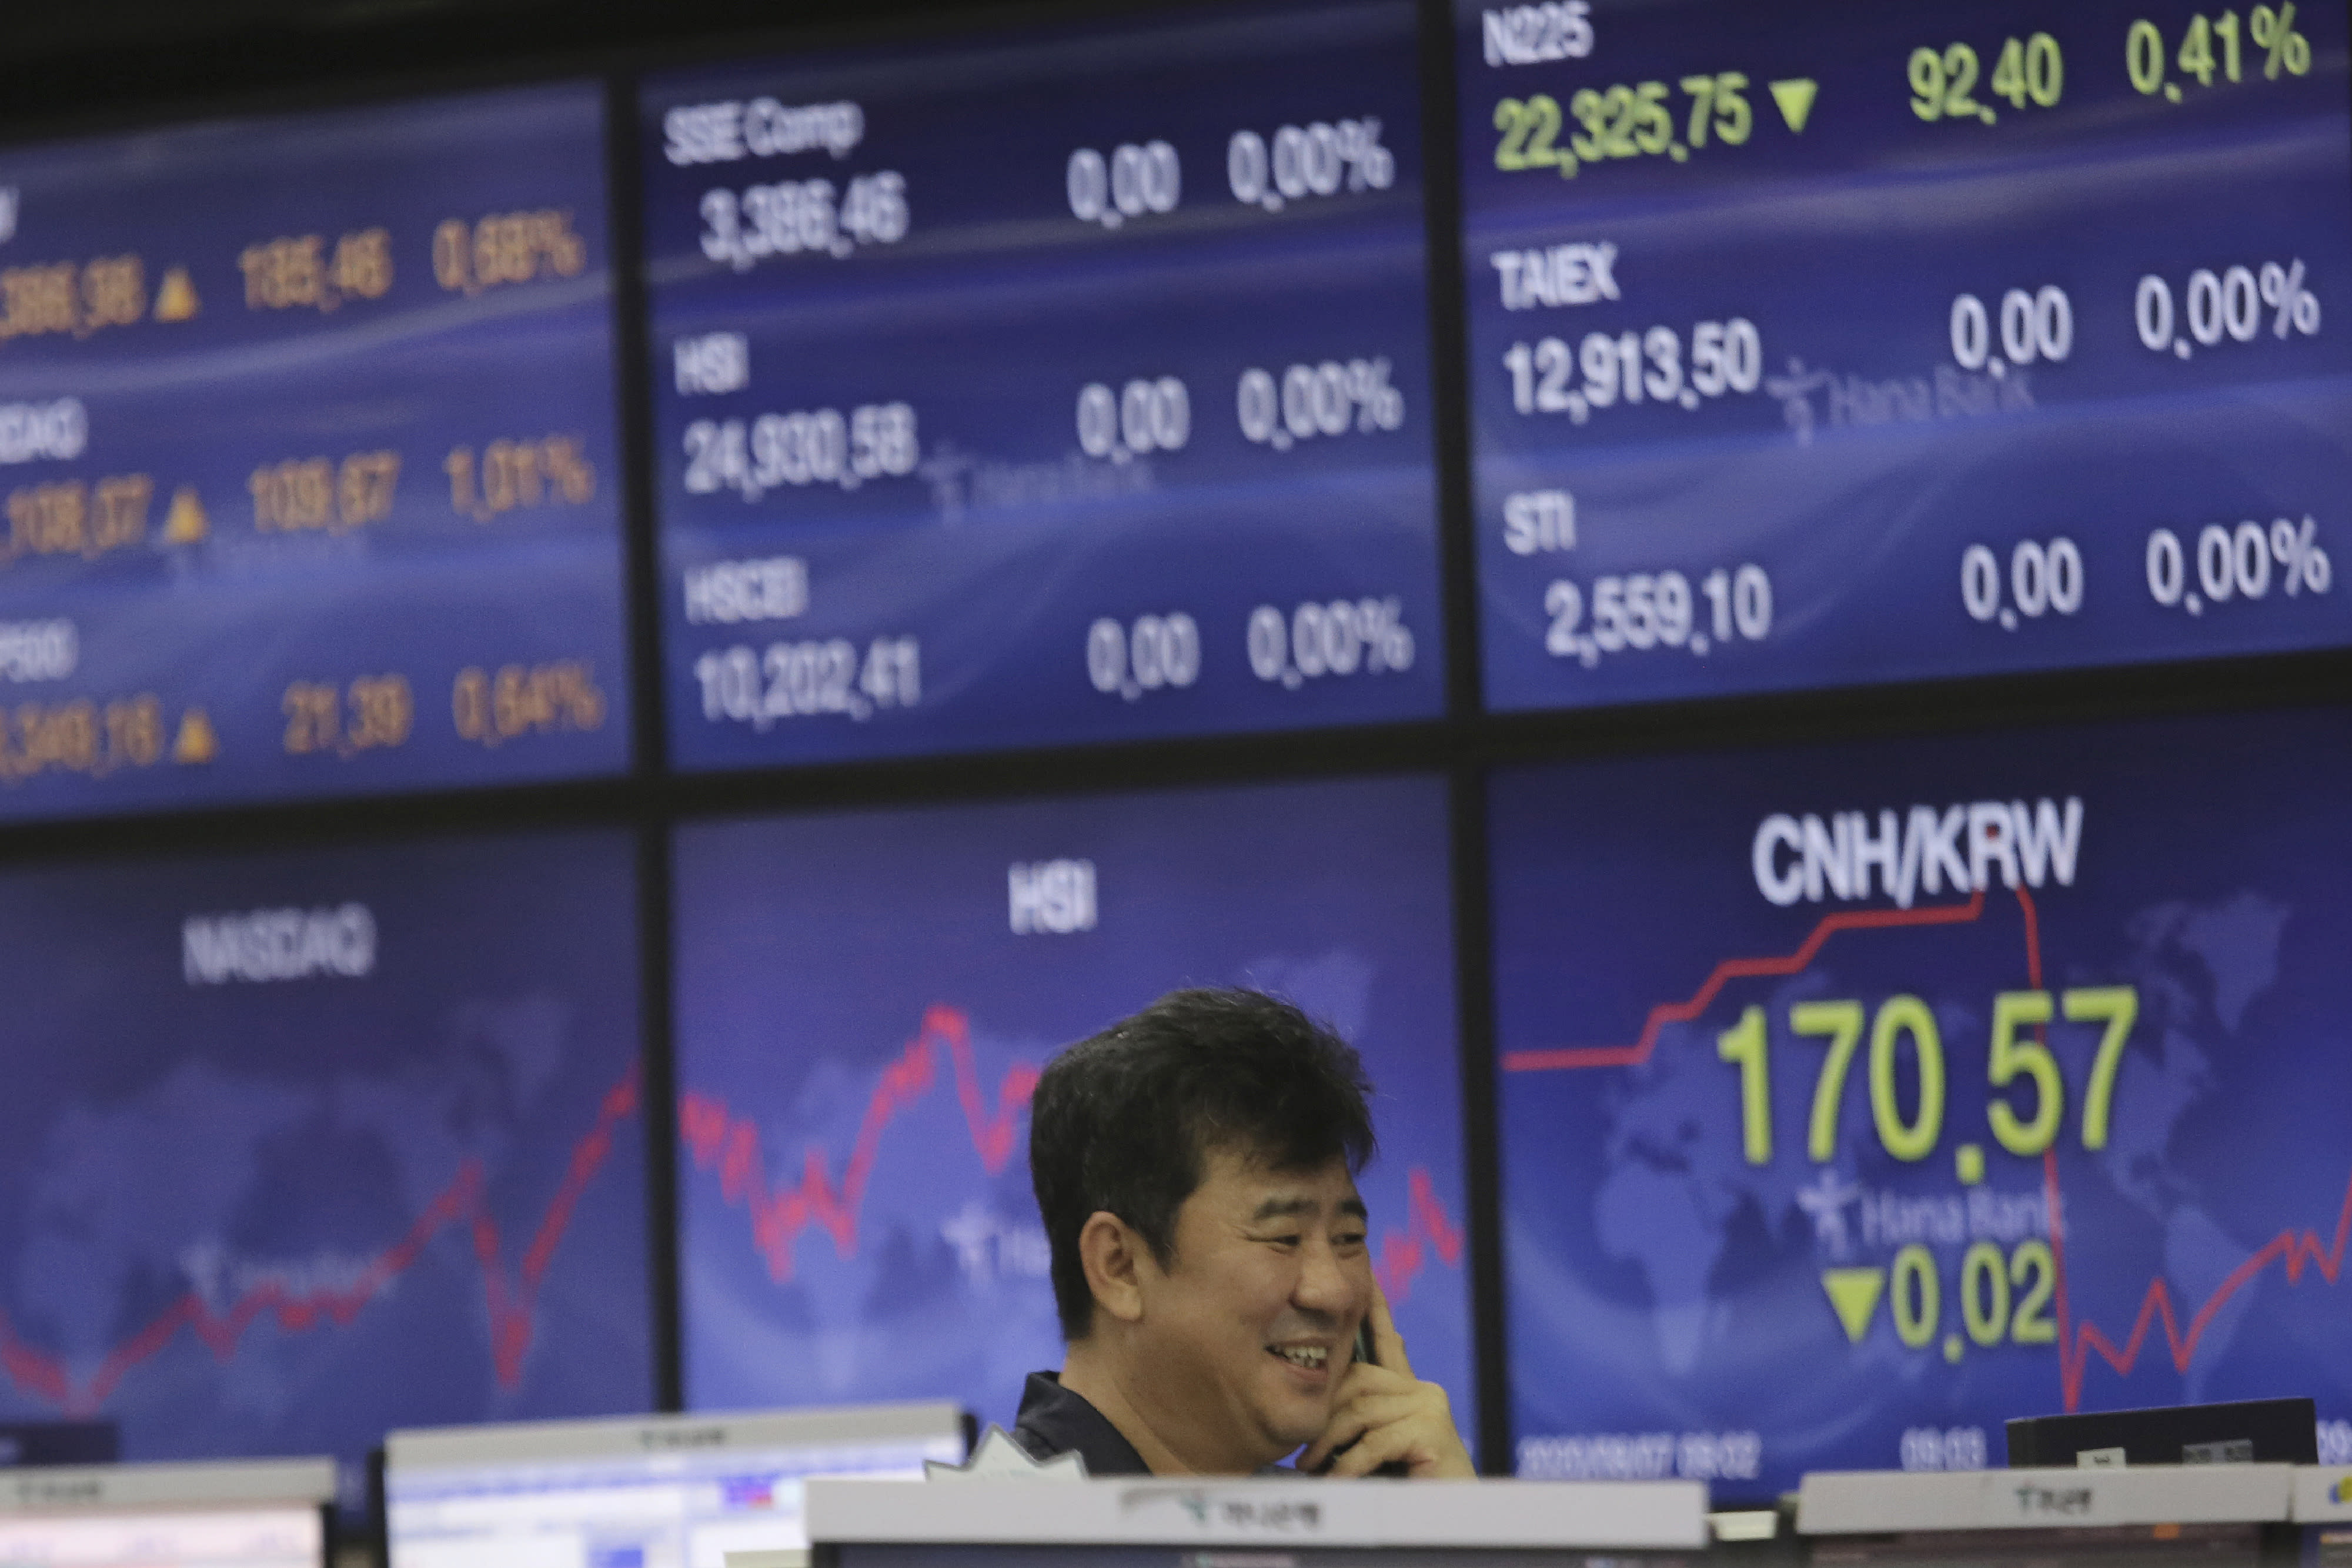 A currency trader smiles at the foreign exchange dealing room of the KEB Hana Bank headquarters in Seoul, South Korea, Friday, Aug. 7, 2020. Asian shares were mostly lower Friday in lackluster trading, as the region weighed continuing trade tensions over China and optimism about more fiscal stimulus for the ailing U.S. economy. (AP Photo/Ahn Young-joon)